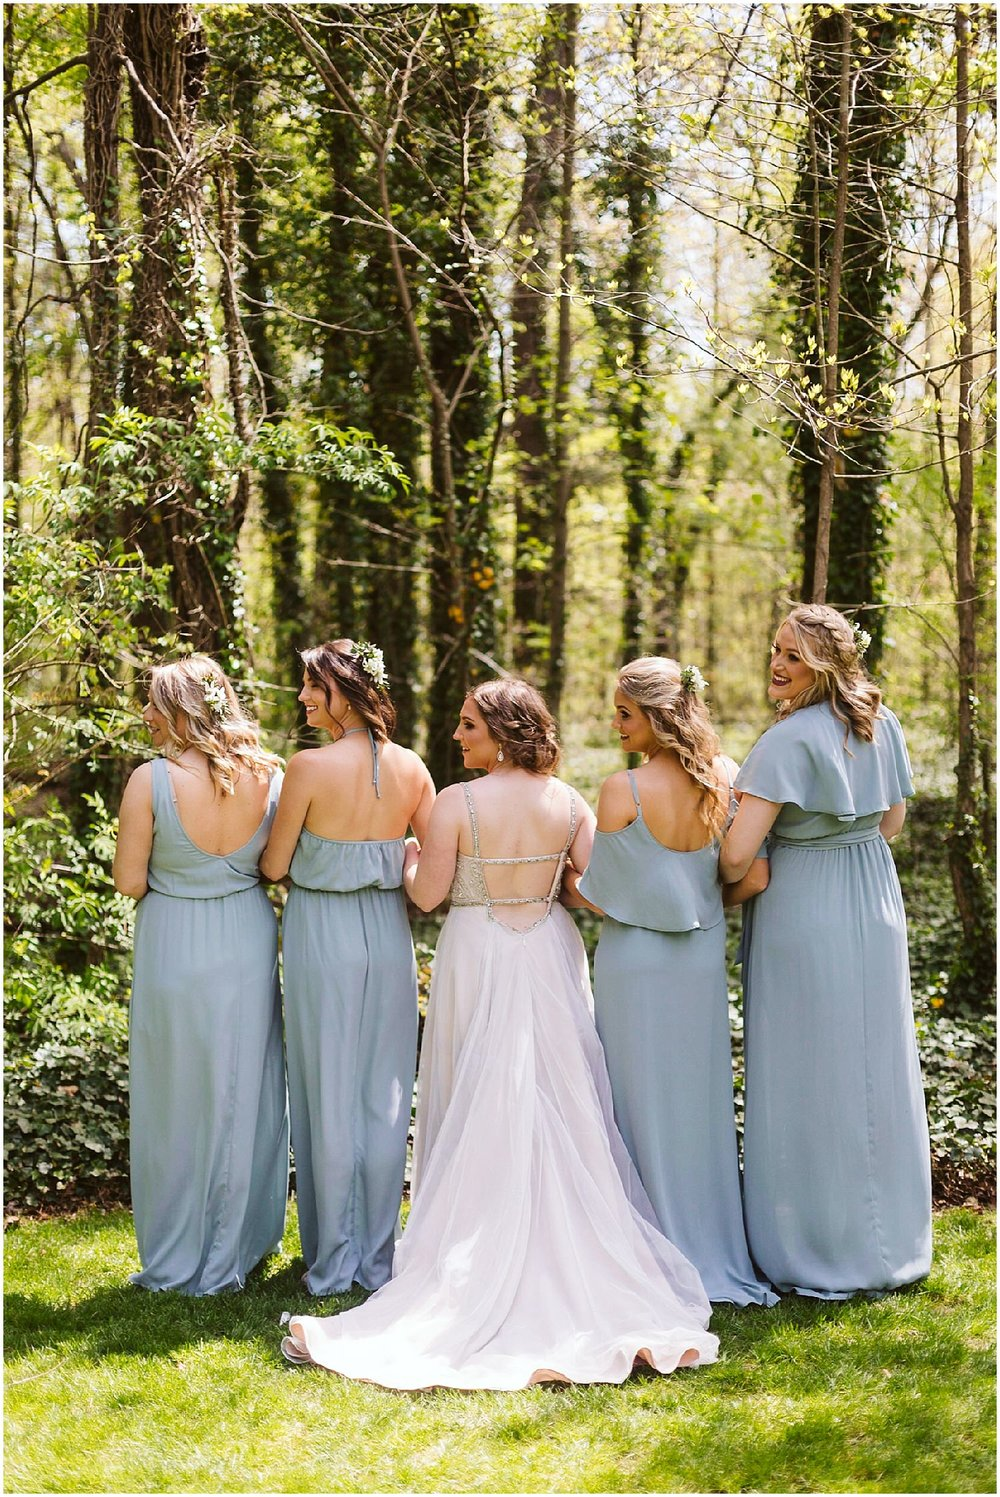 back of bridesmaids' dresses